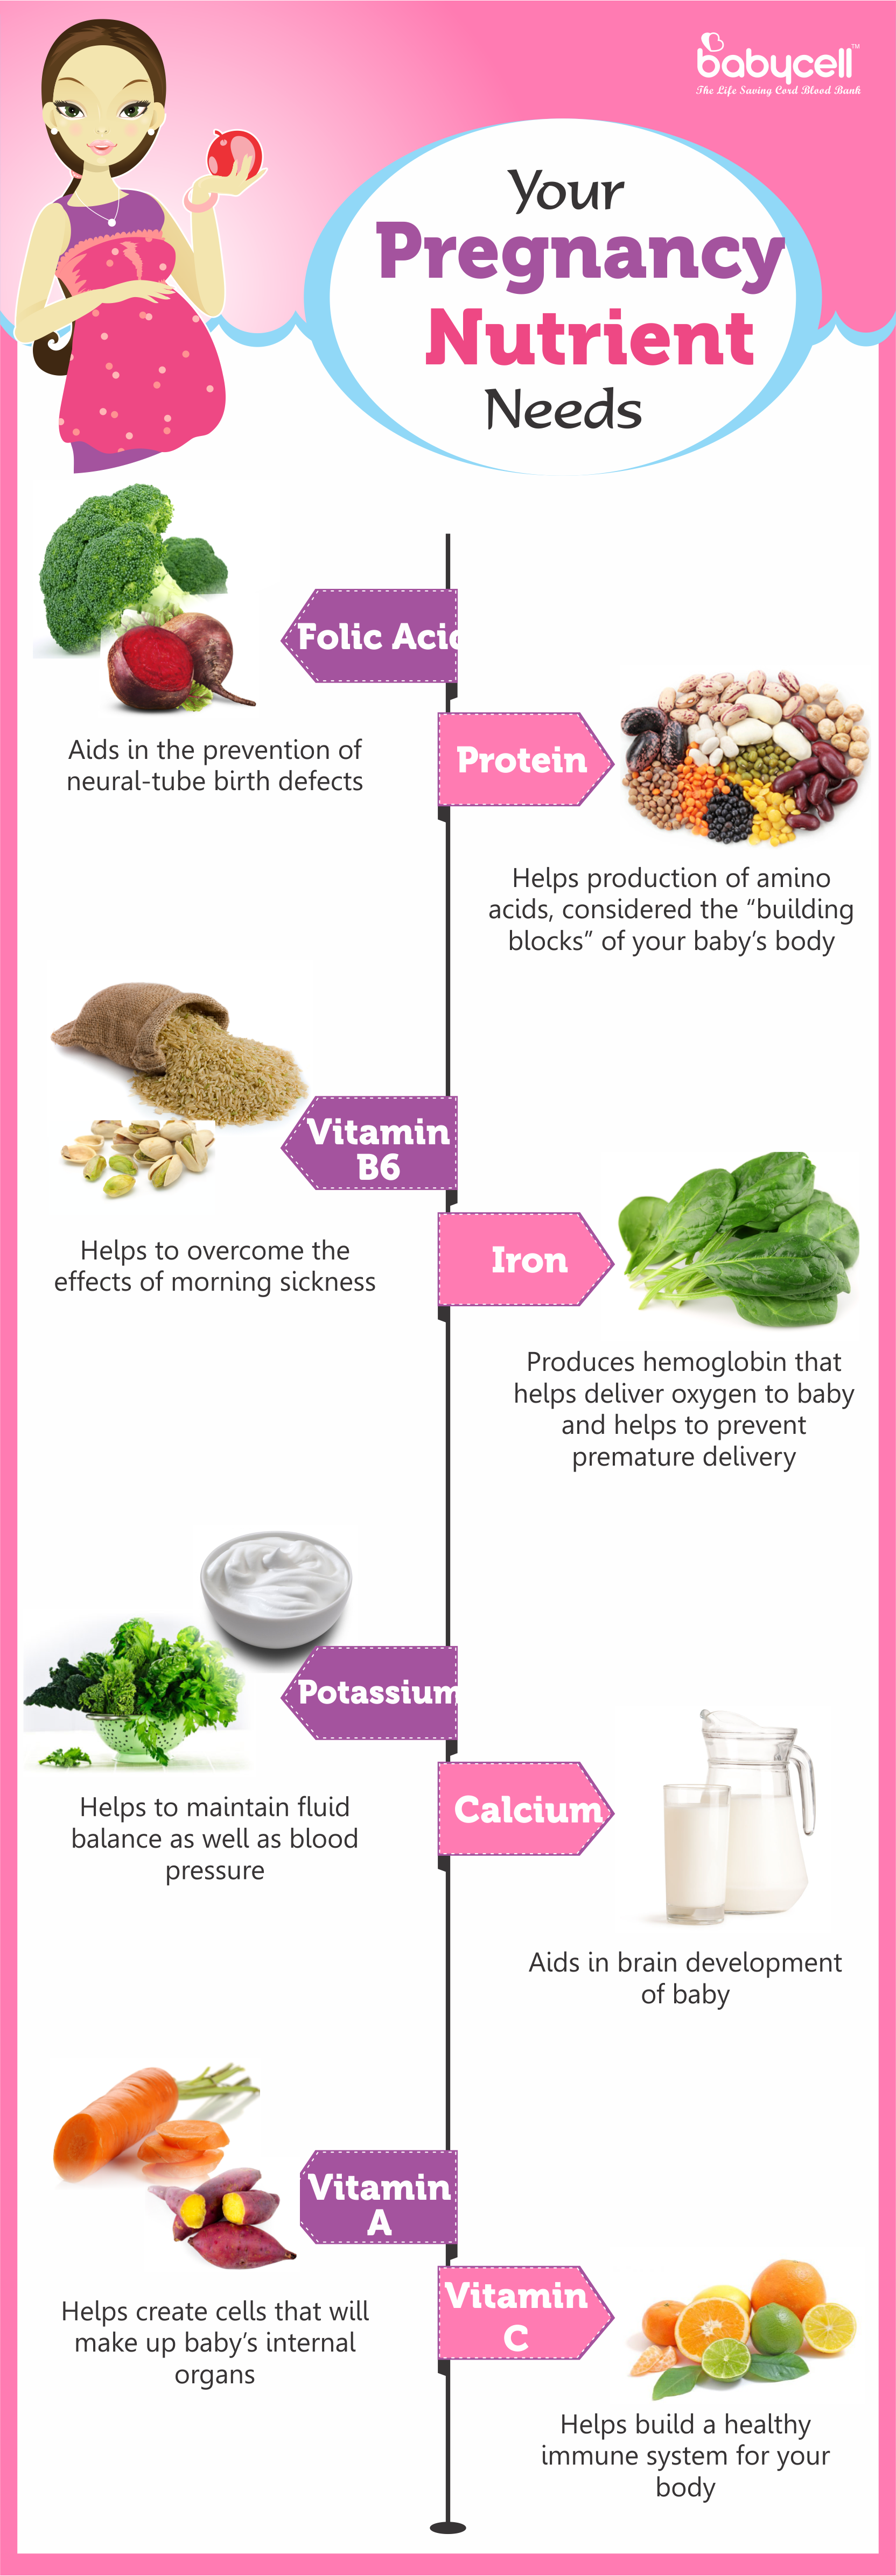 Pregnancy Nutrient Needs